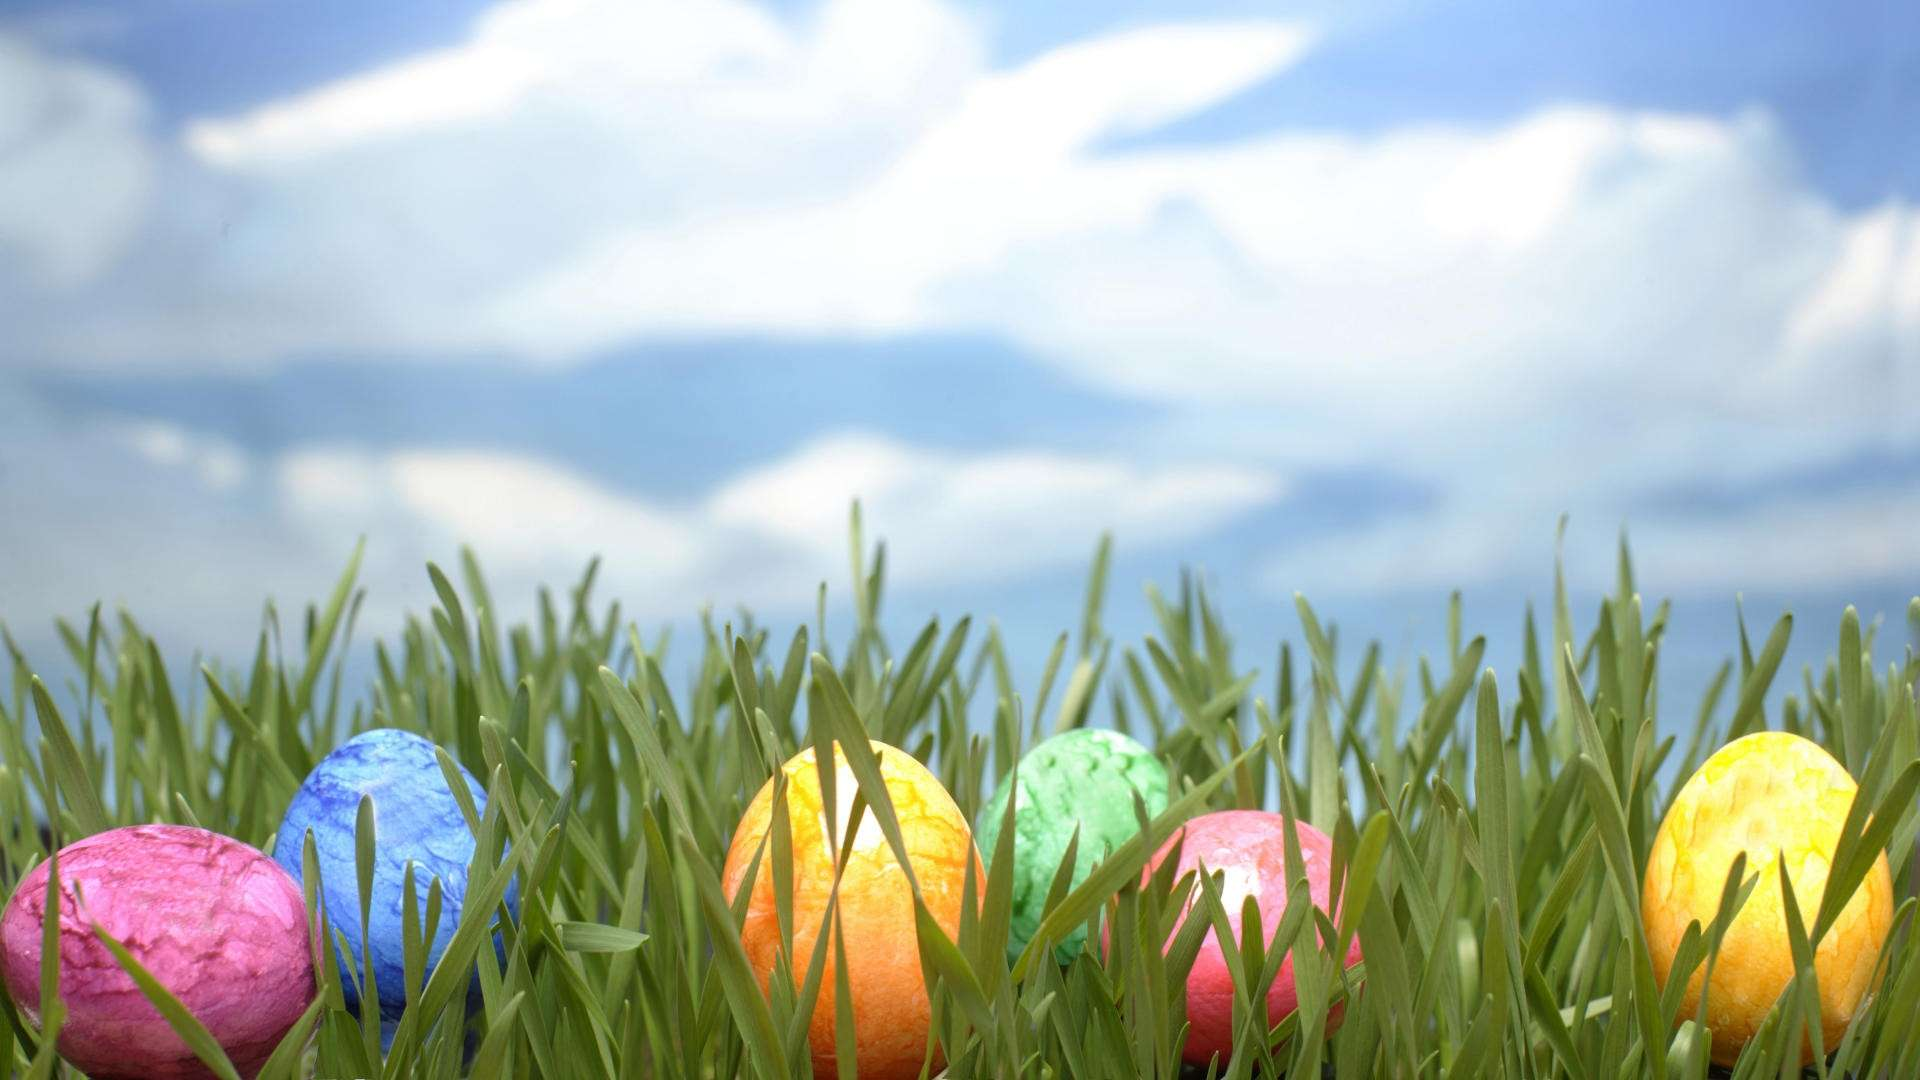 Easter Egg Backgrounds